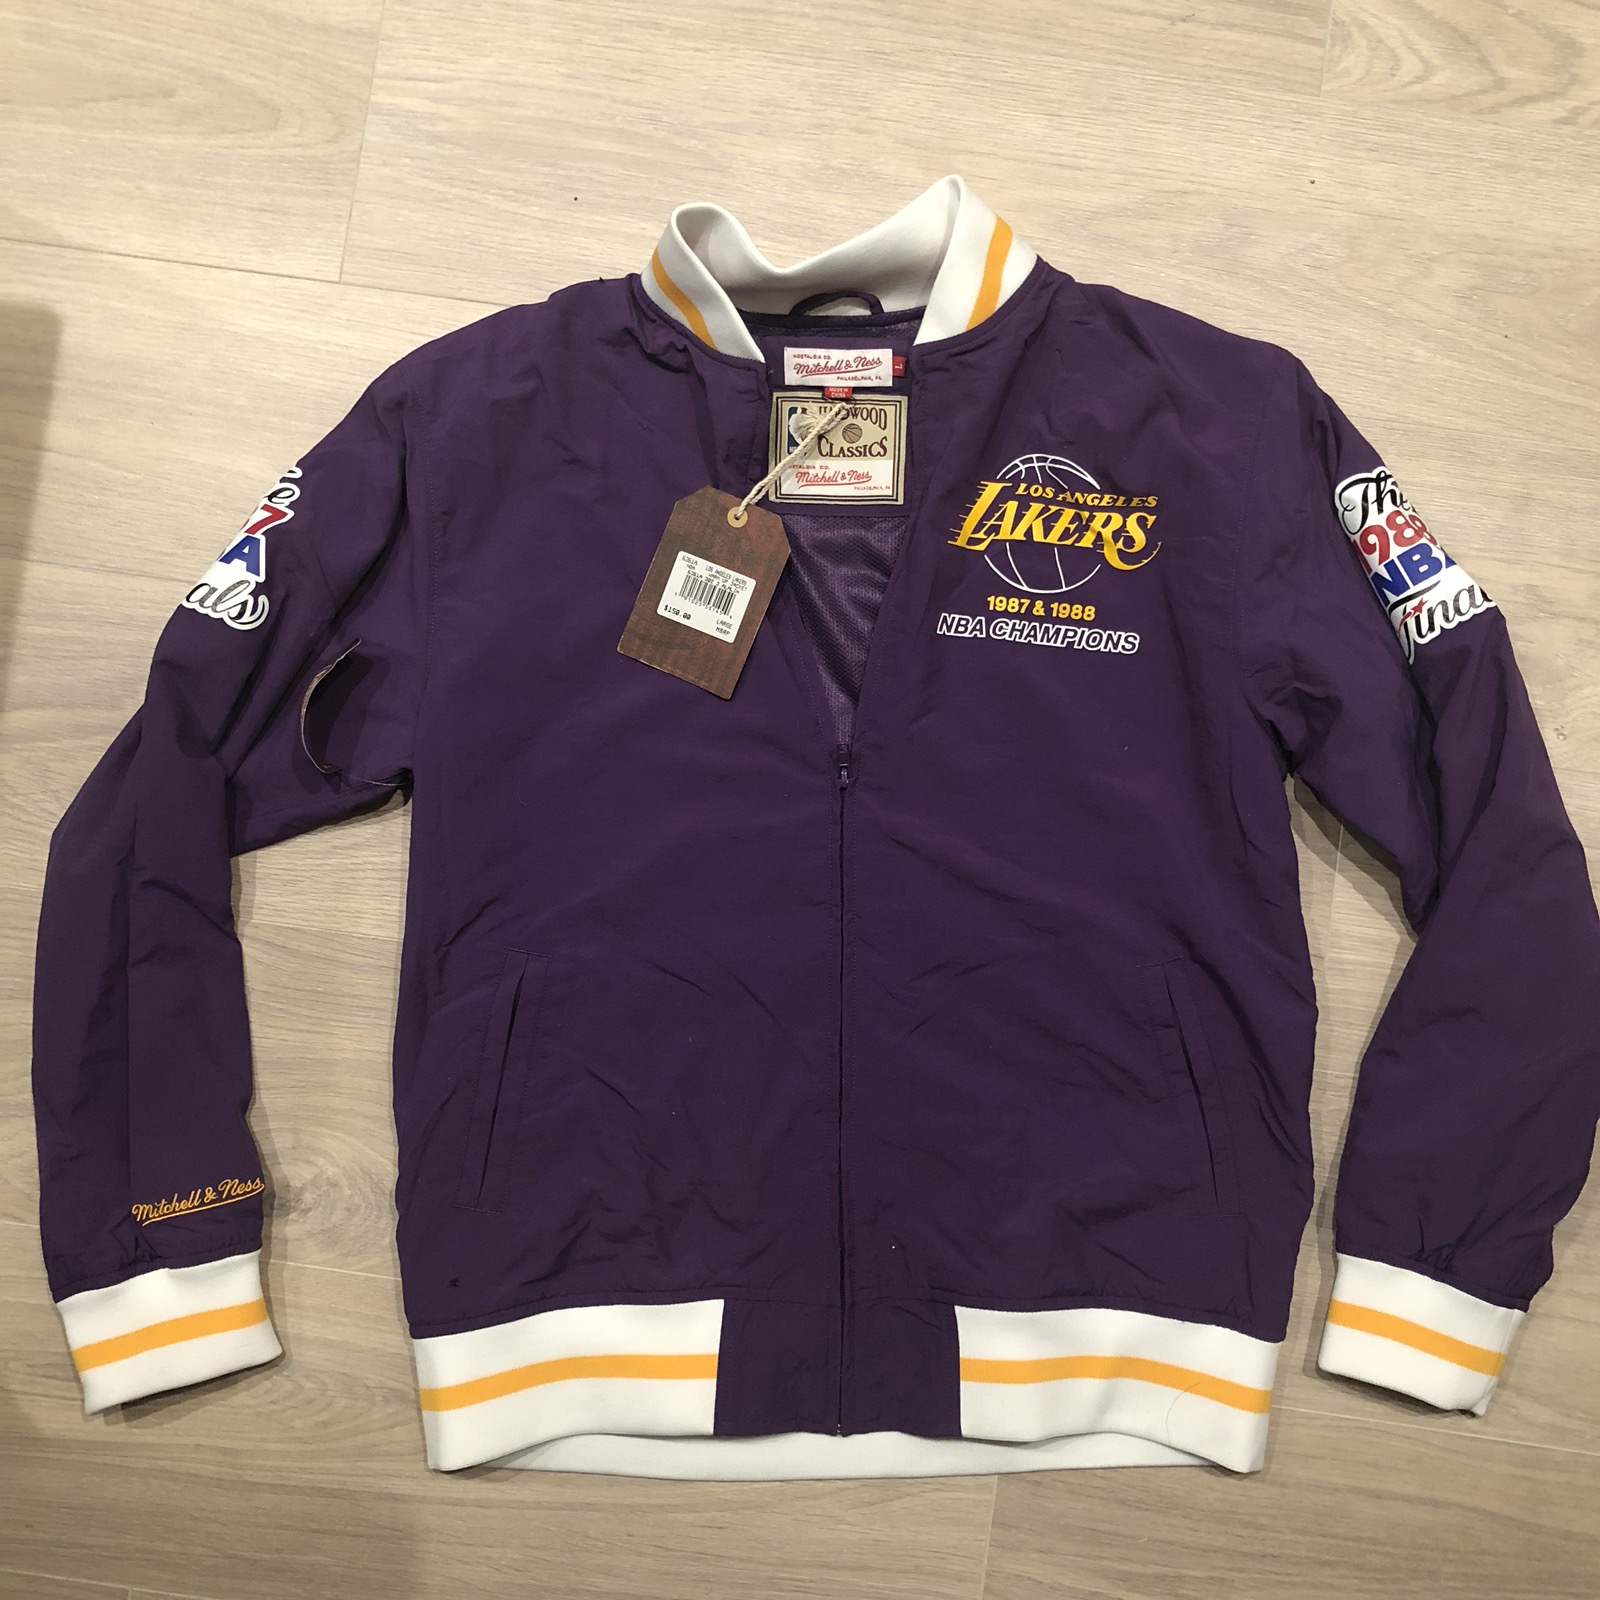 3ab6745d Mitchell & Ness Lakers Warm Up Jacket Size l - Light Jackets for Sale -  Grailed